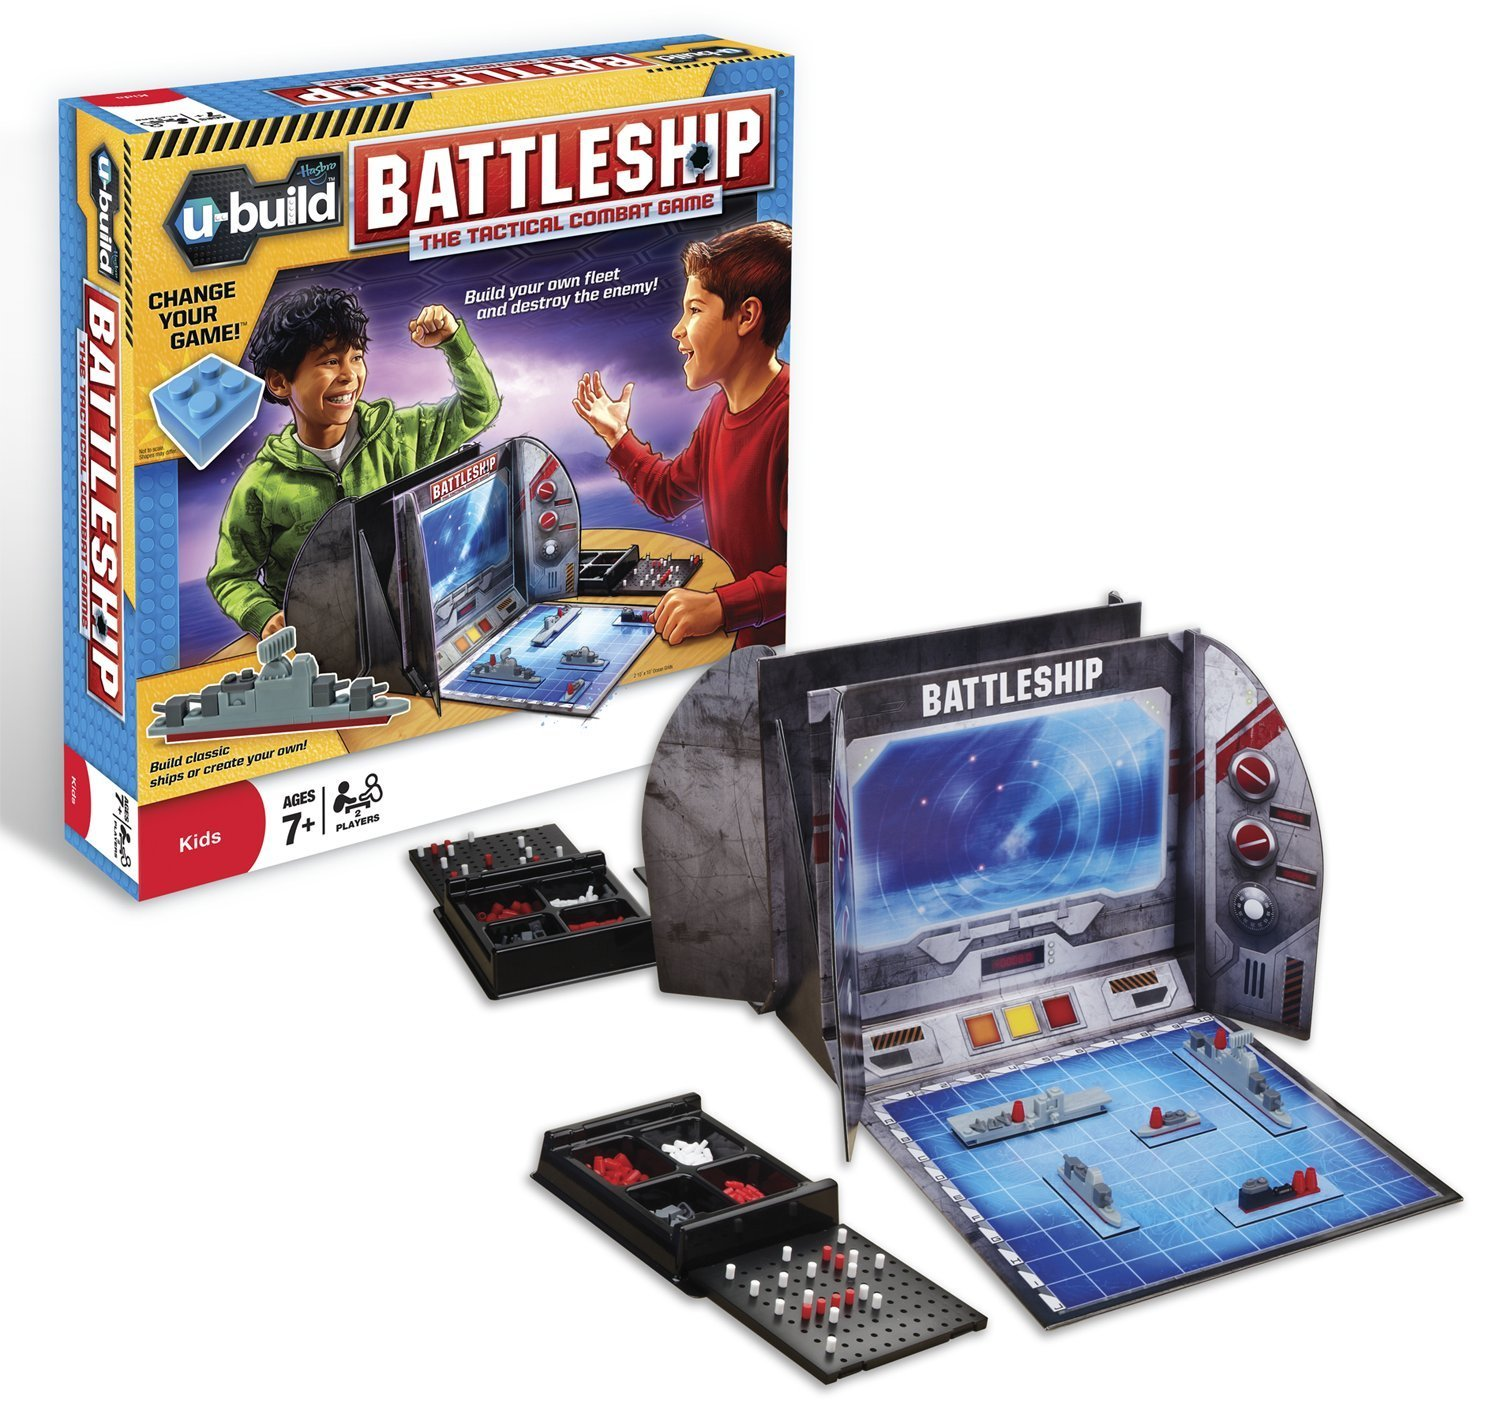 U-Build Battleship, Strategic water battle-themed game lets you build your own fleet and... by